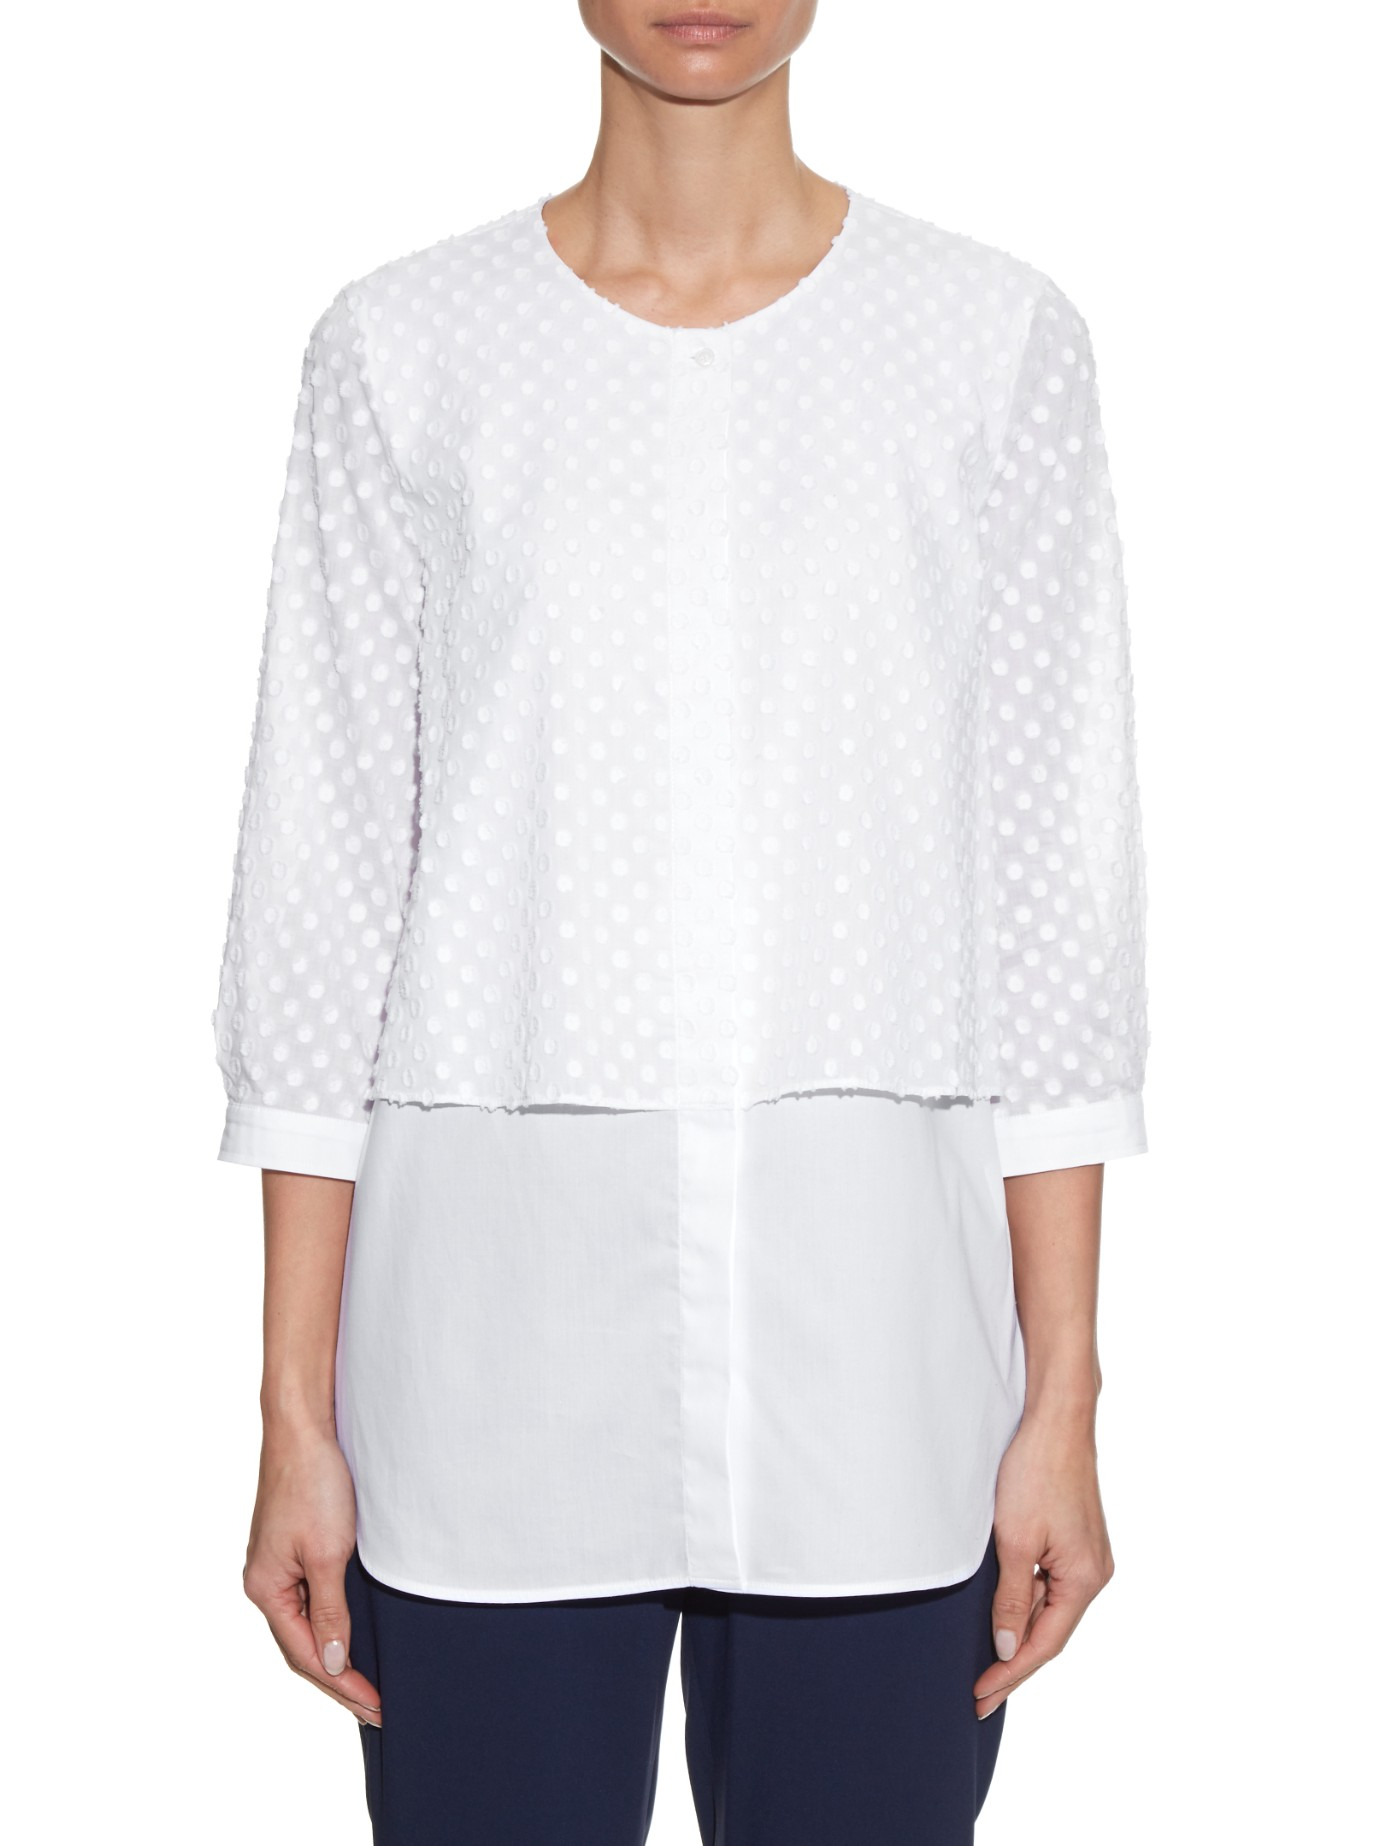 weekend by maxmara flavia shirt in white lyst. Black Bedroom Furniture Sets. Home Design Ideas